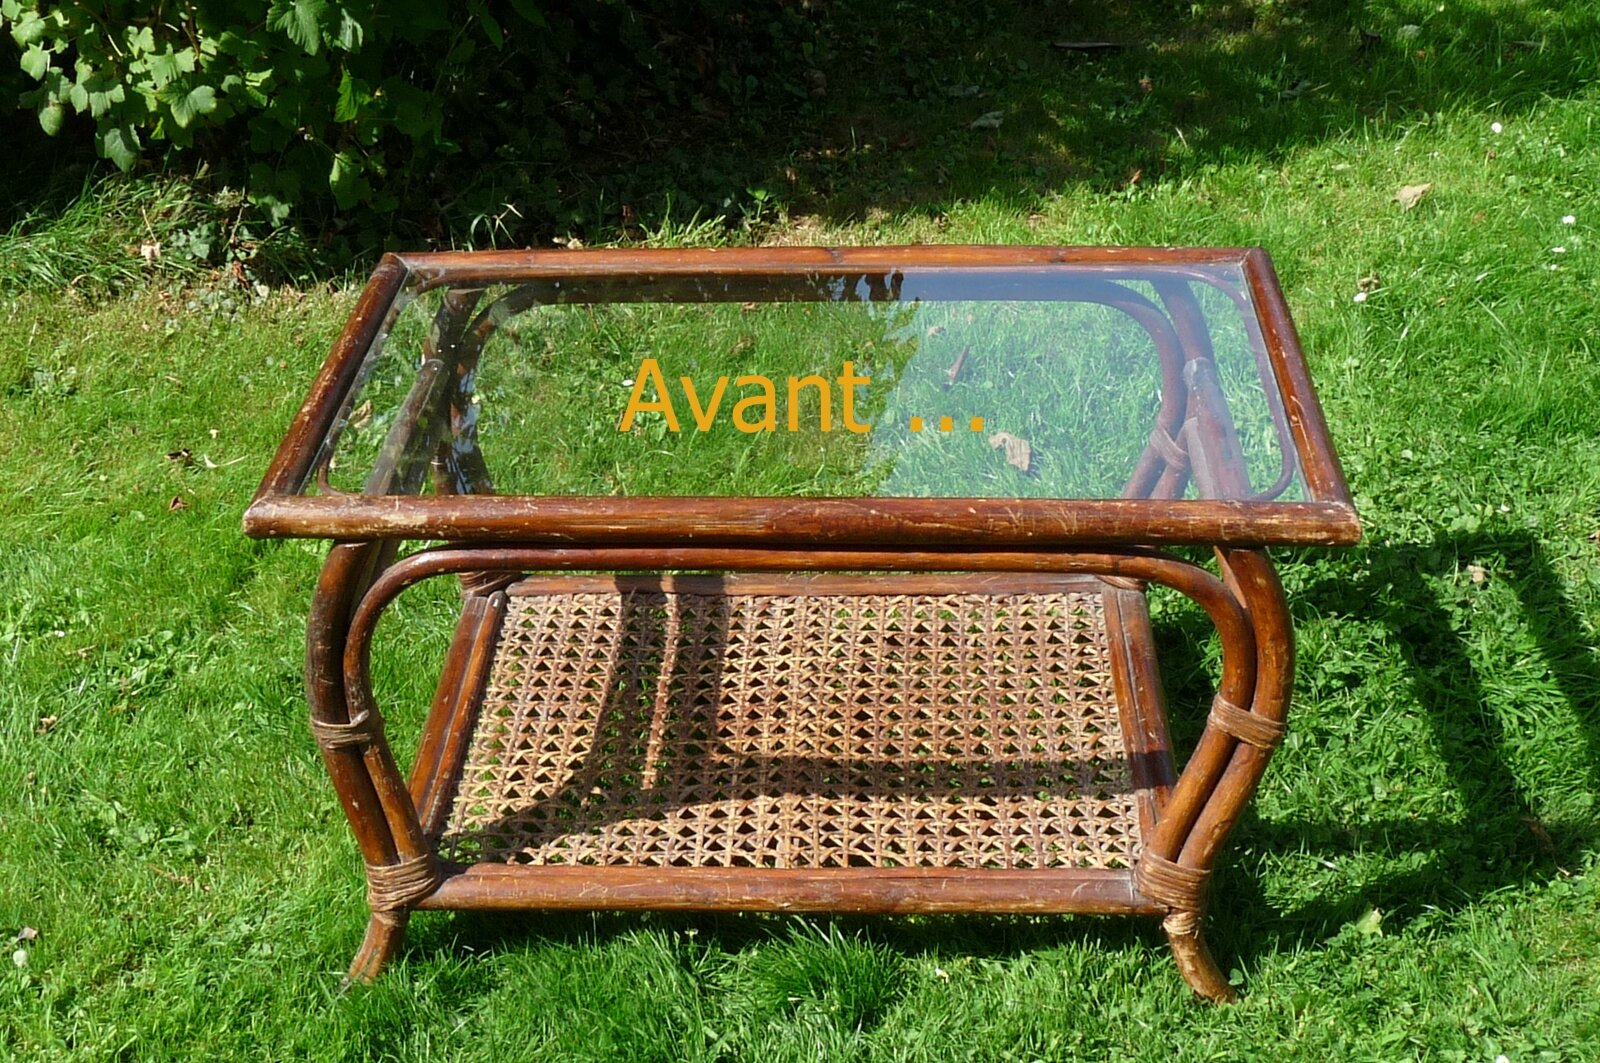 Pimp tes tables un rien une id e une bricole ma bricole - Customiser table en verre ...